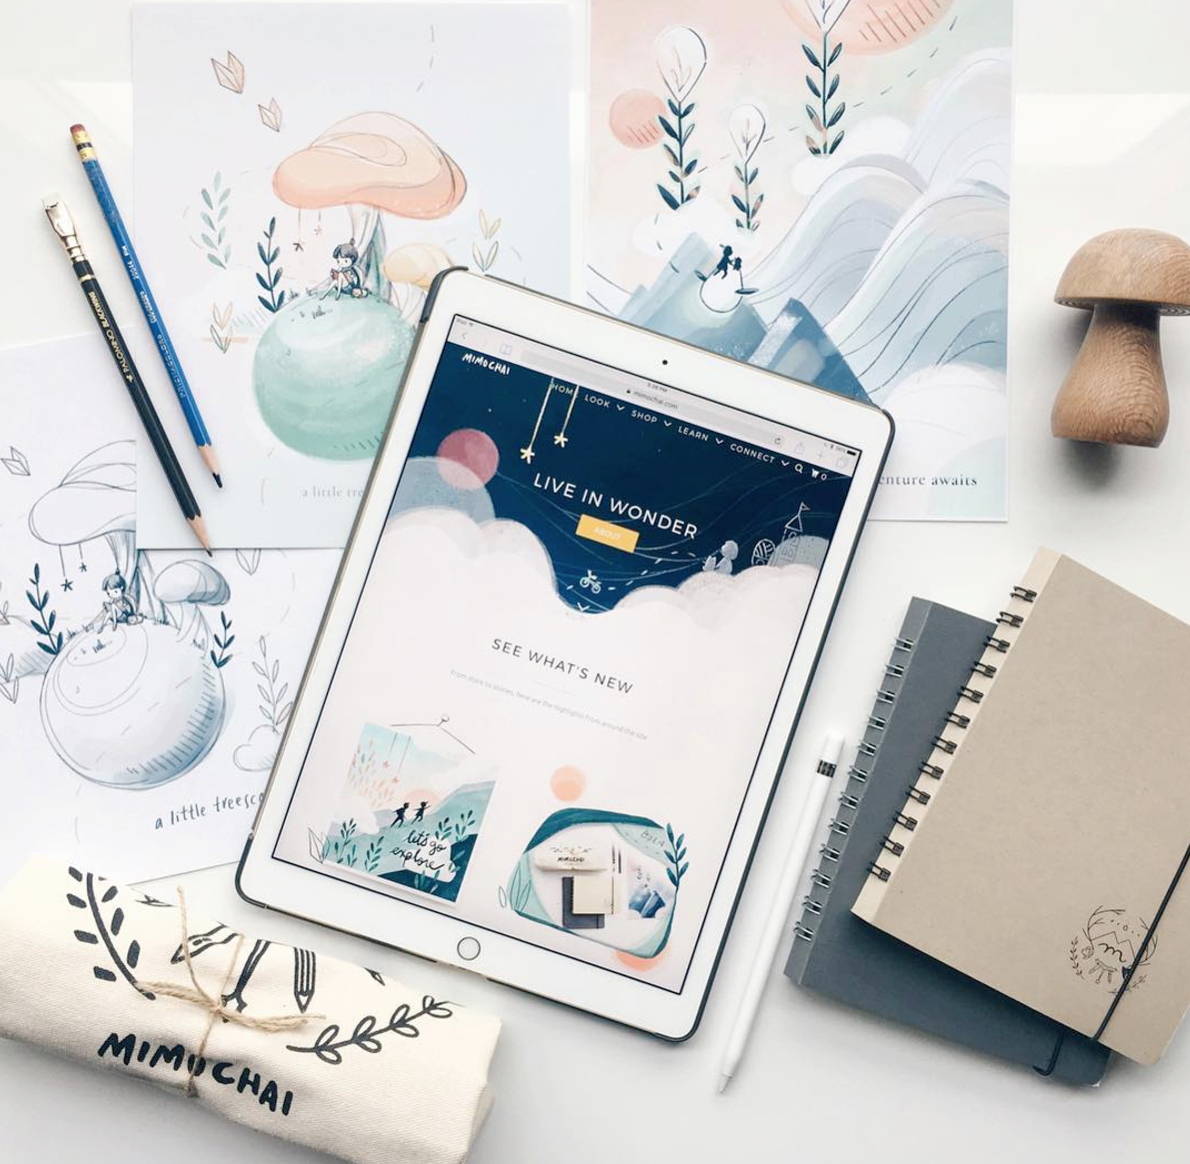 Mimi uses both paper and pencil and tablets to draw. Courtesy of Mimi Chao